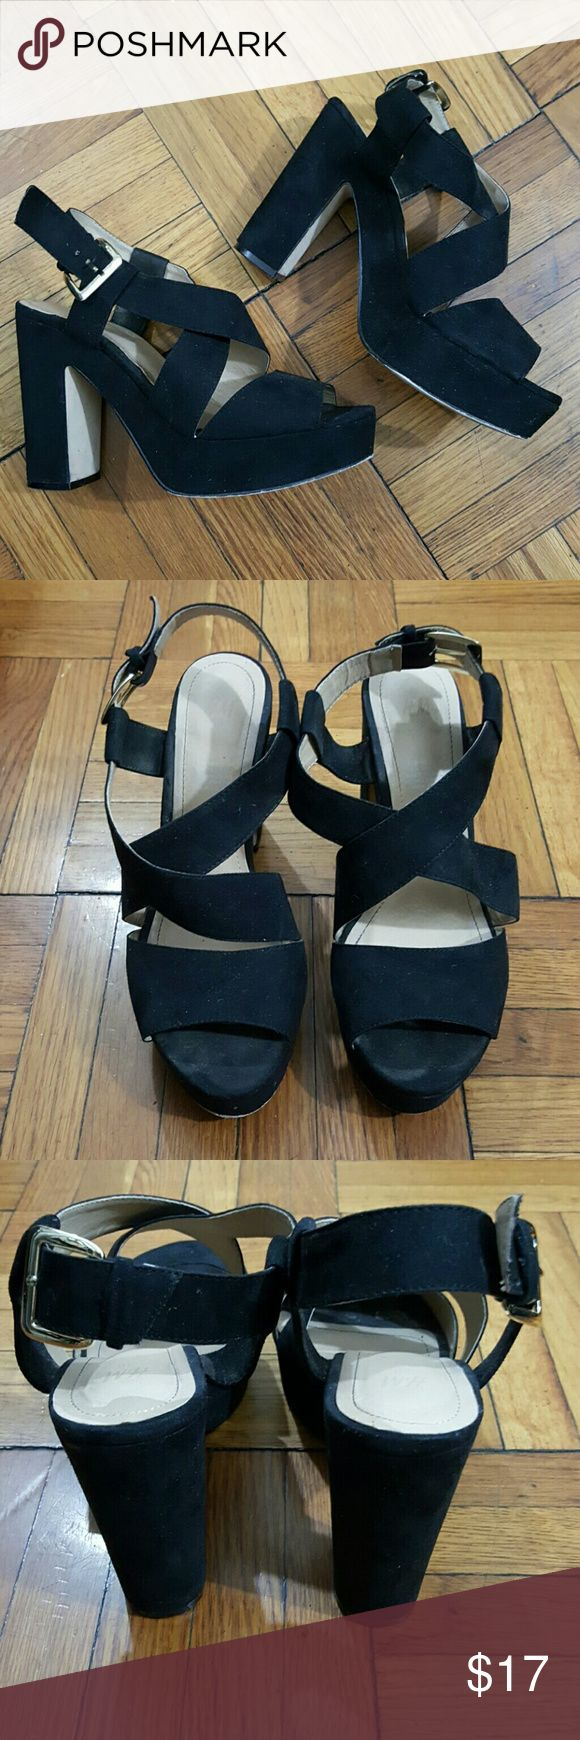 """H&M Black Platform Heels 38 These are a pair of size 3 (7.5) black platform pumps from H&M. Minimal signs of wear. Heels are approximately 5"""" and lift on front is 1.5"""".  No trades. H&M Shoes Platforms"""